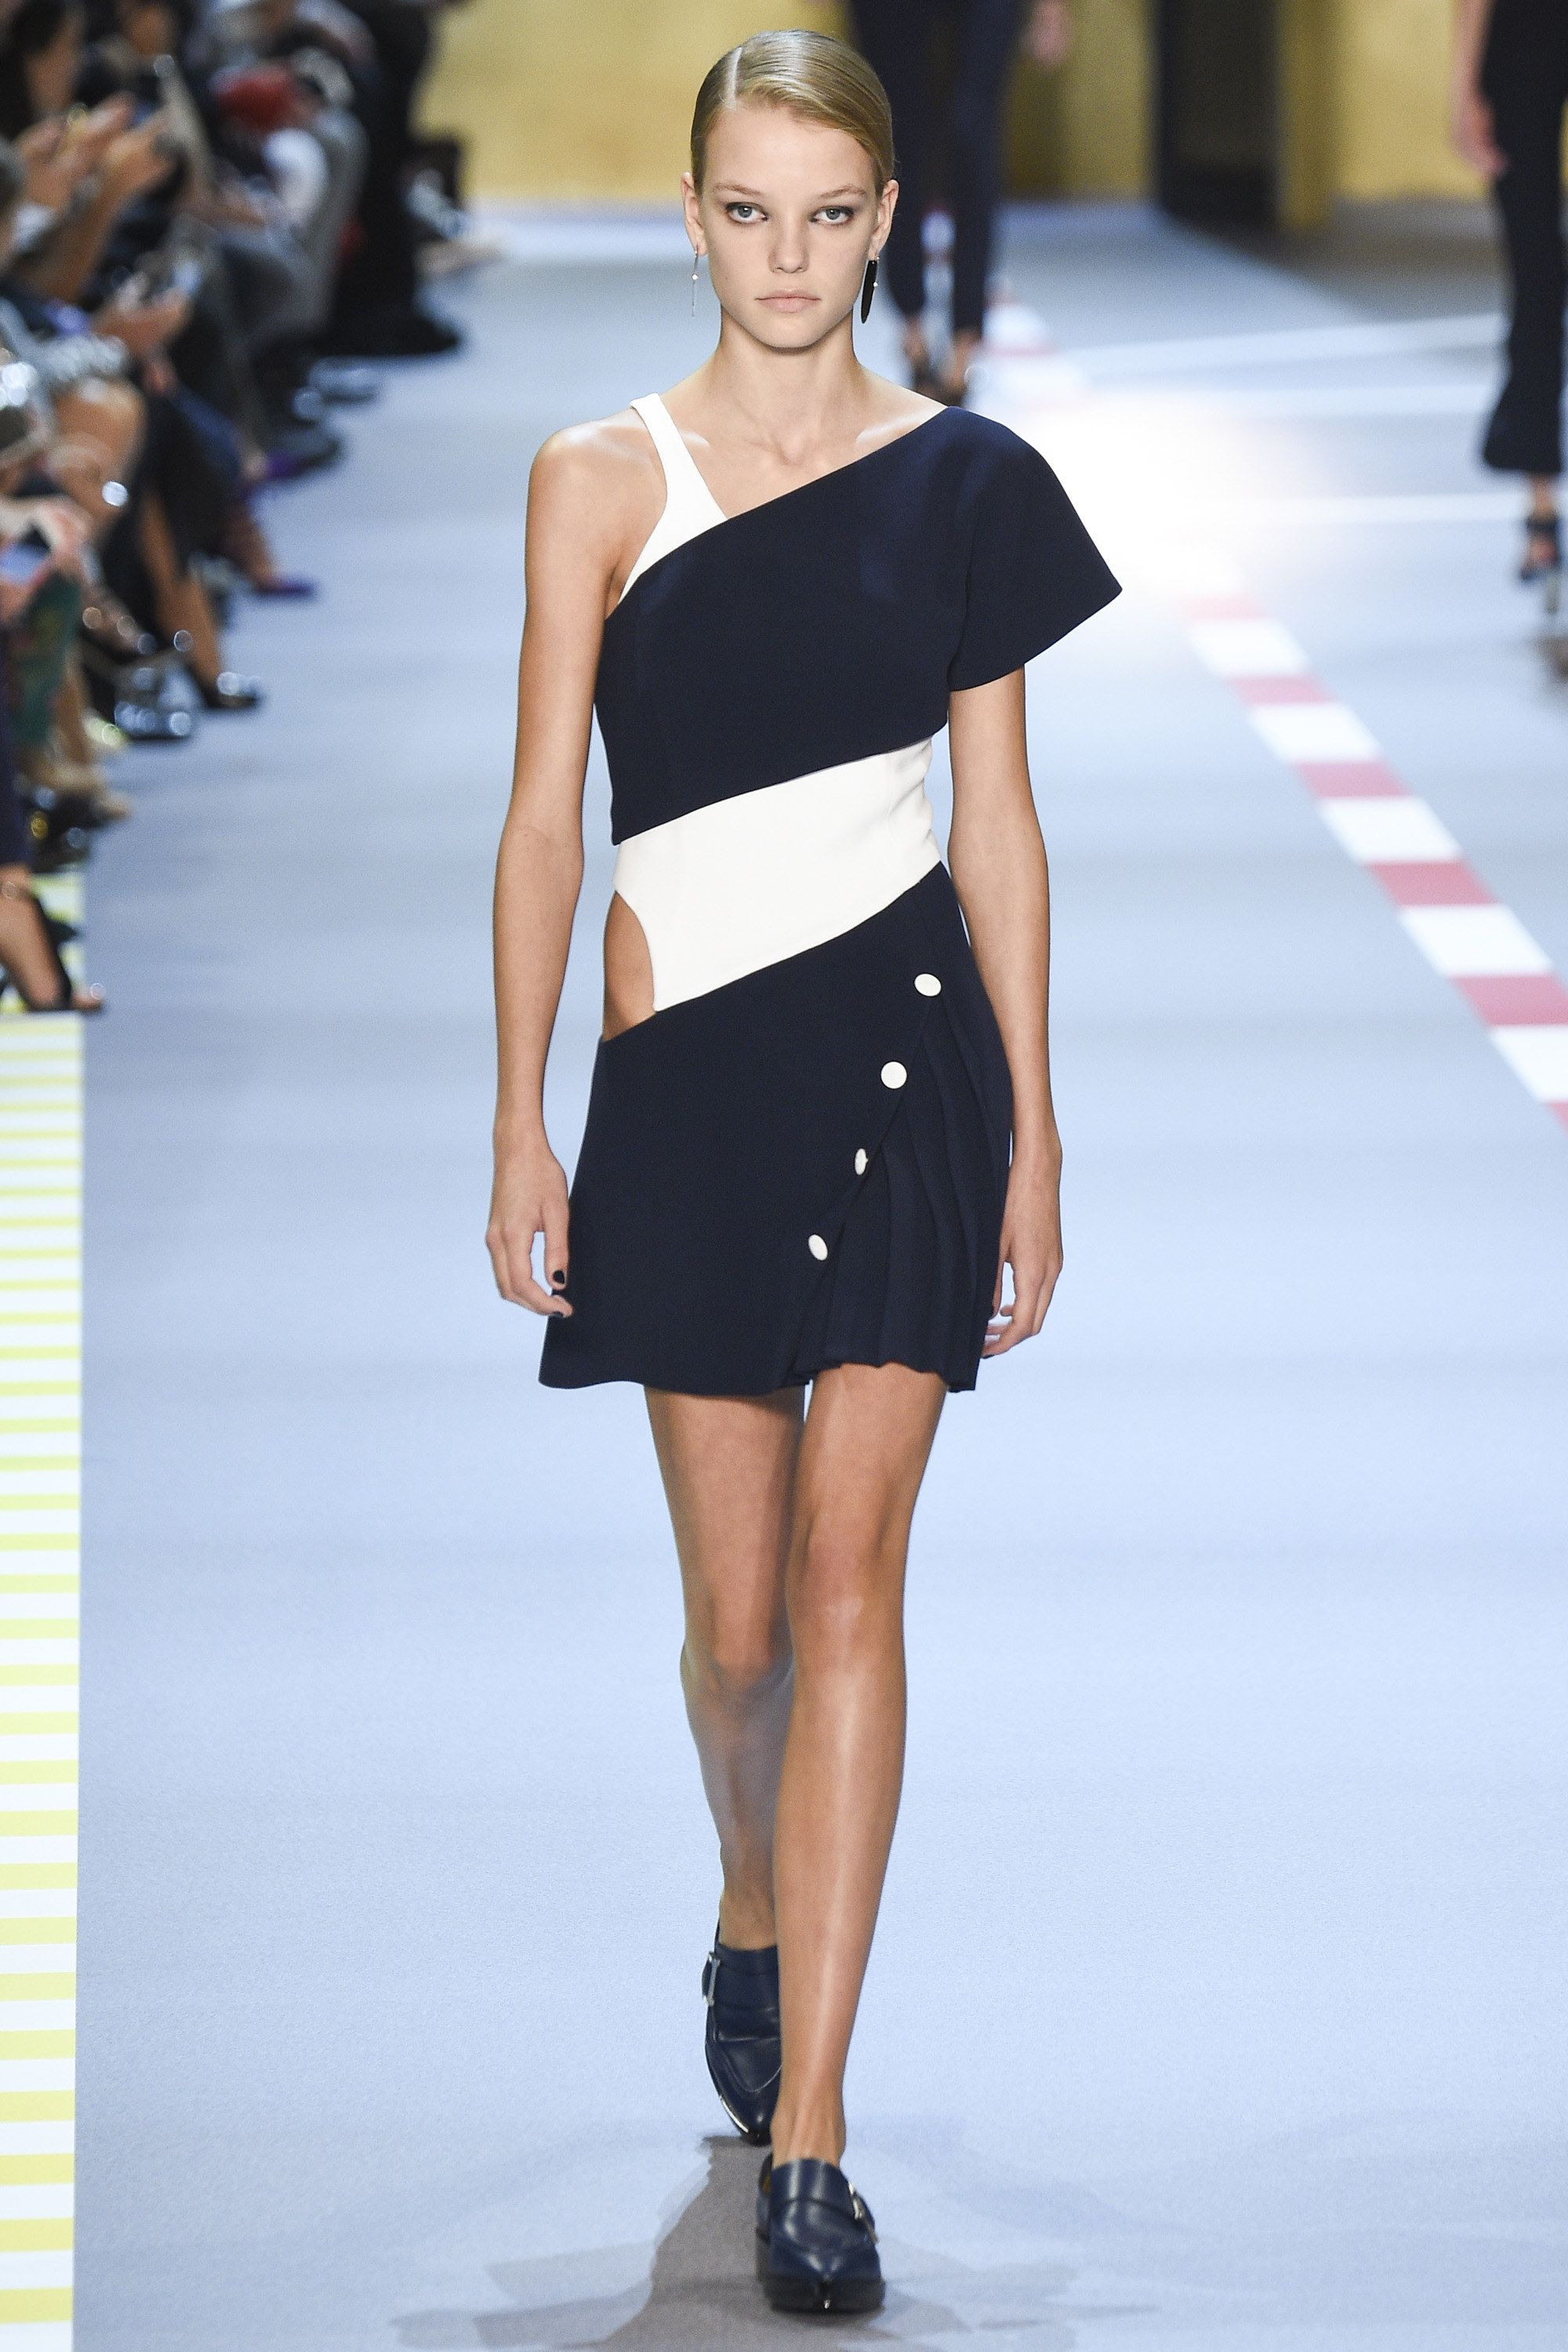 Mugler Spring 2016 Ready-to-Wear Fashion Show - Mica Arganaraz